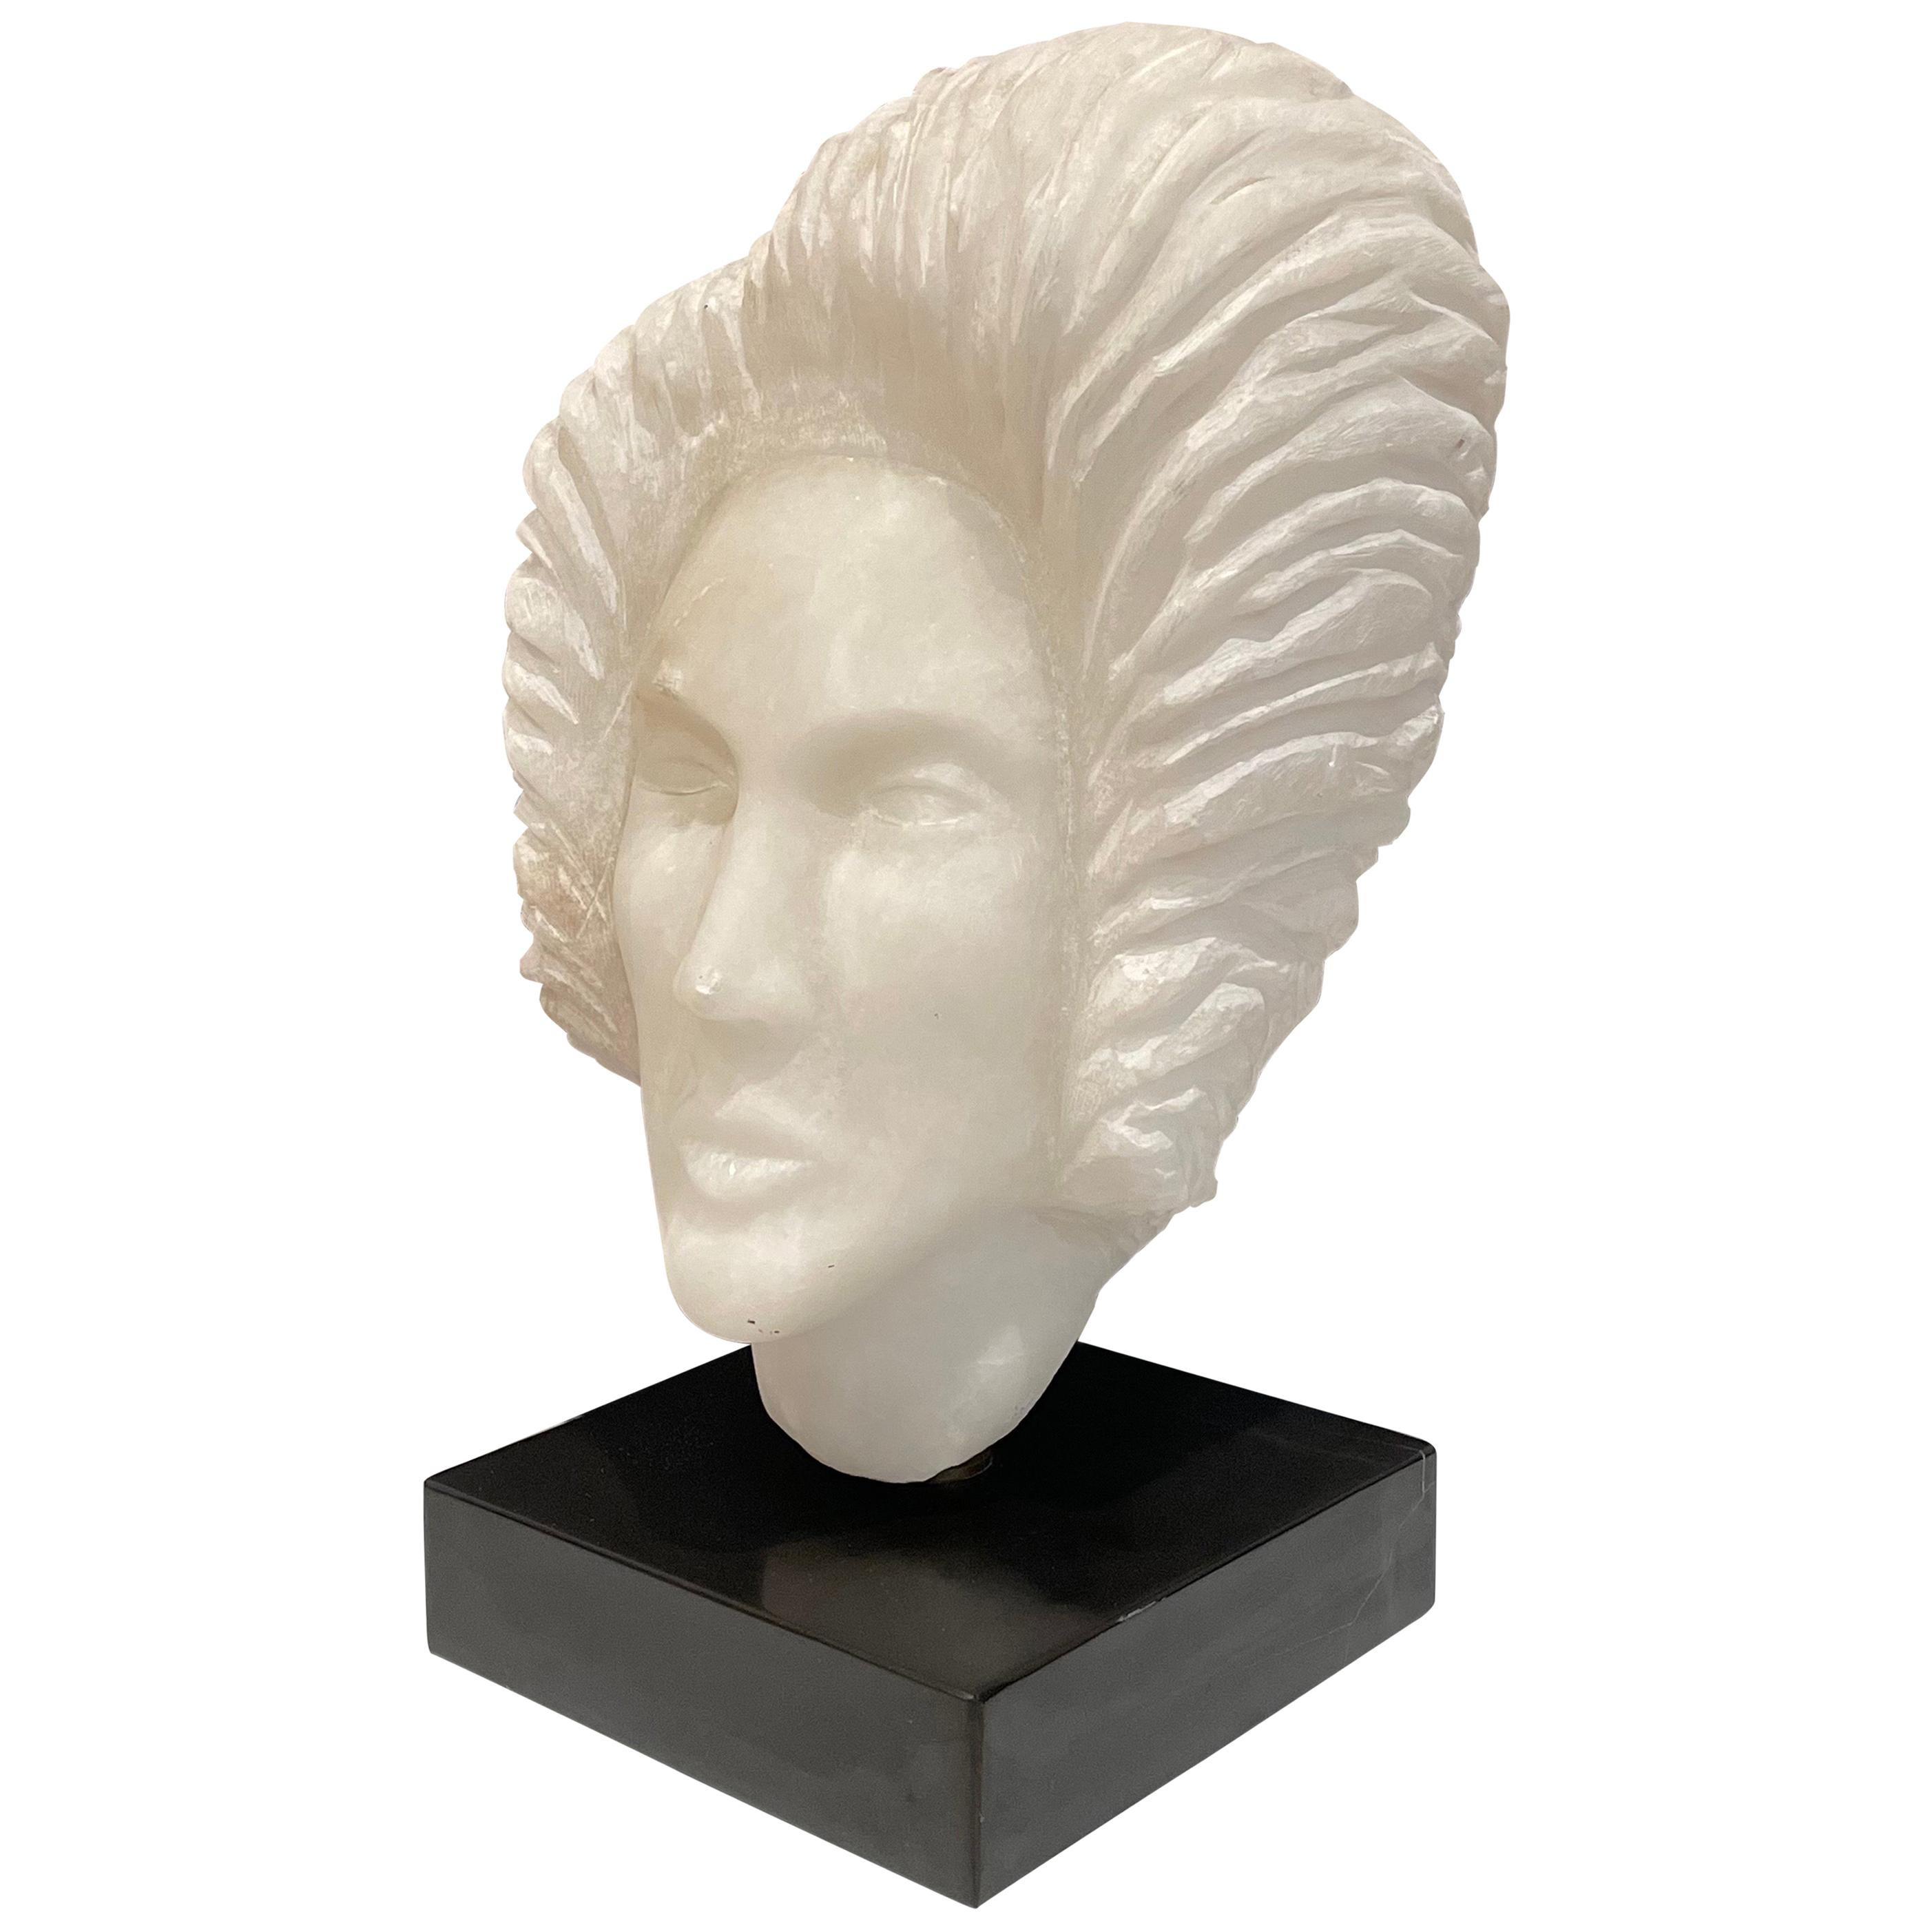 Alabaster Woman's Head Sculpture on Marble Base Rotates 360 Degree